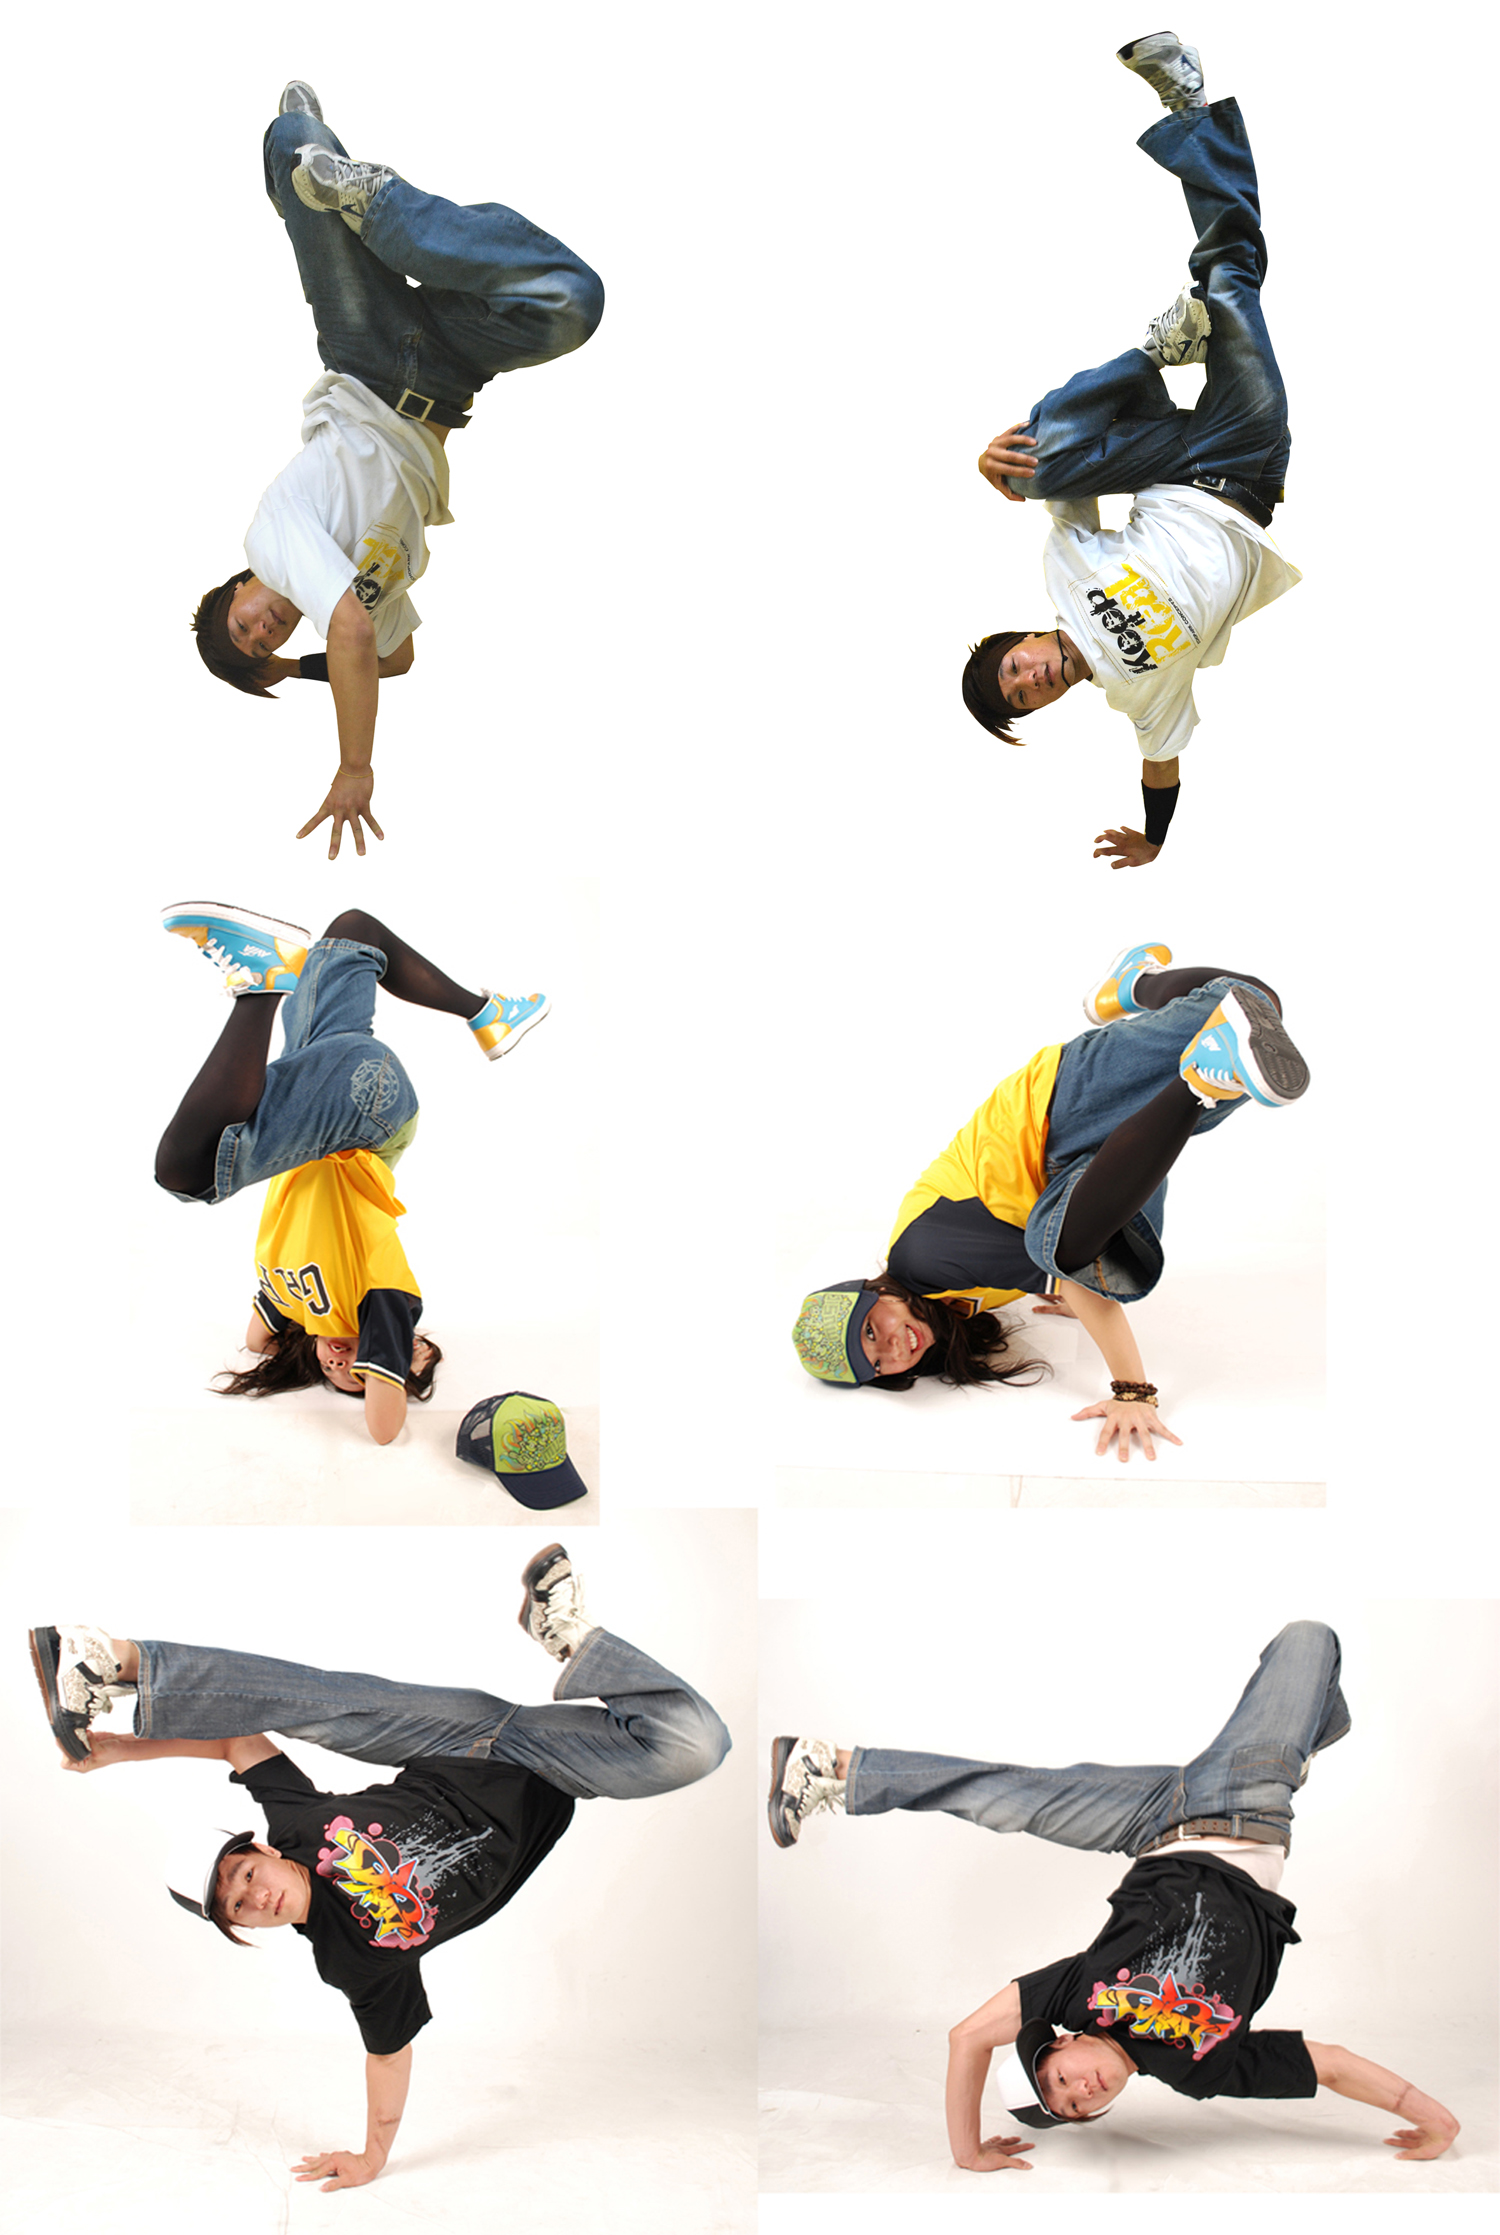 How To Bboy: The Complete Beginner Guide - BreakDance Decoded